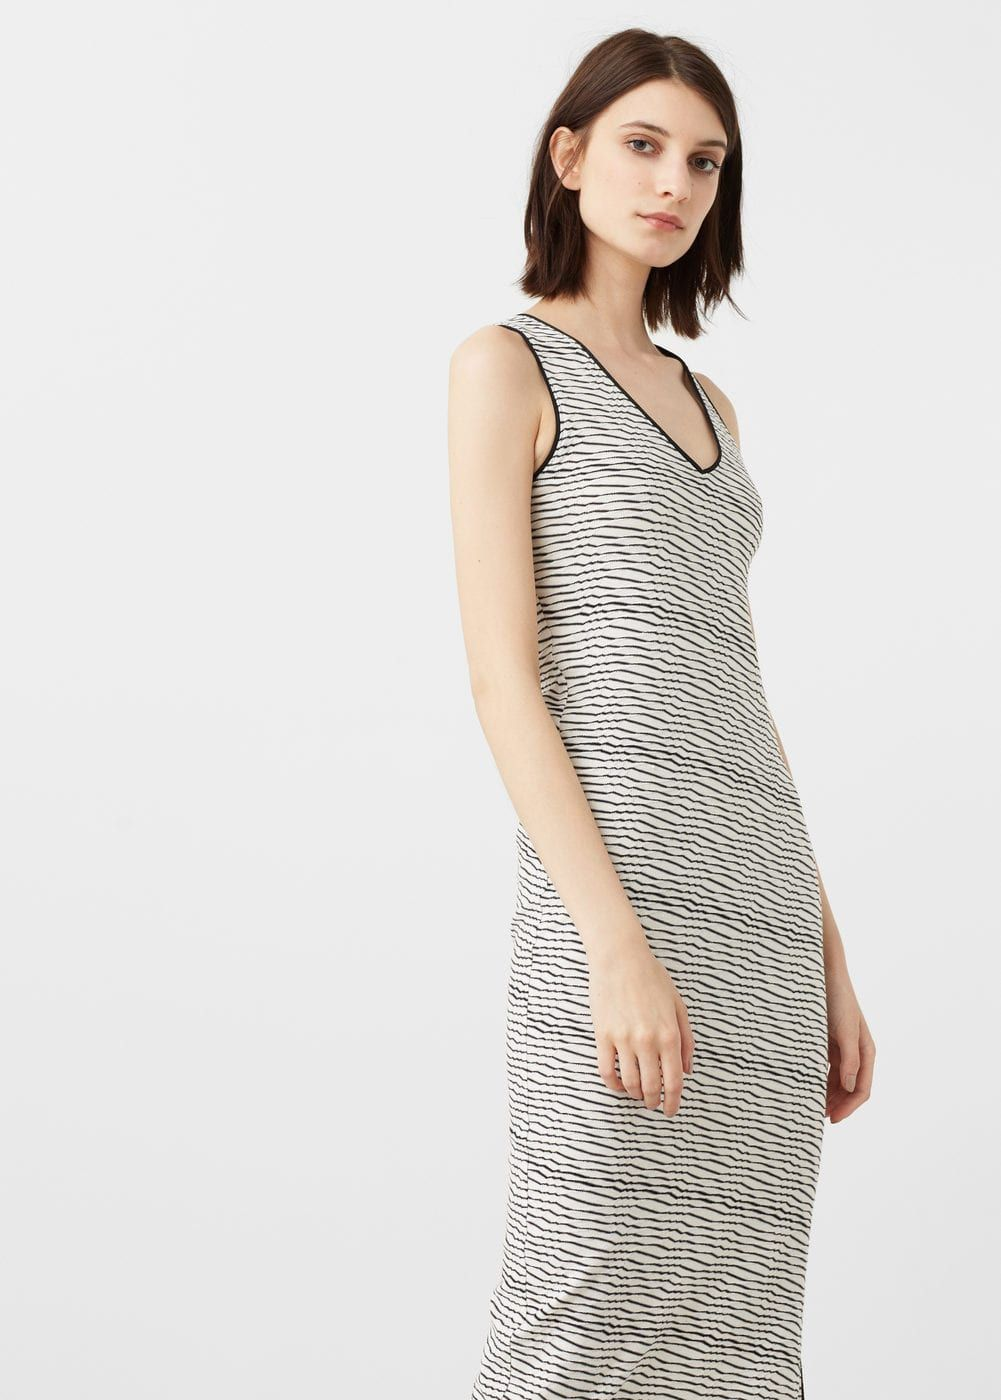 Contrast lace dress zara  Jacquard dress  Woman  OUTLET Netherlands  Dress It Up